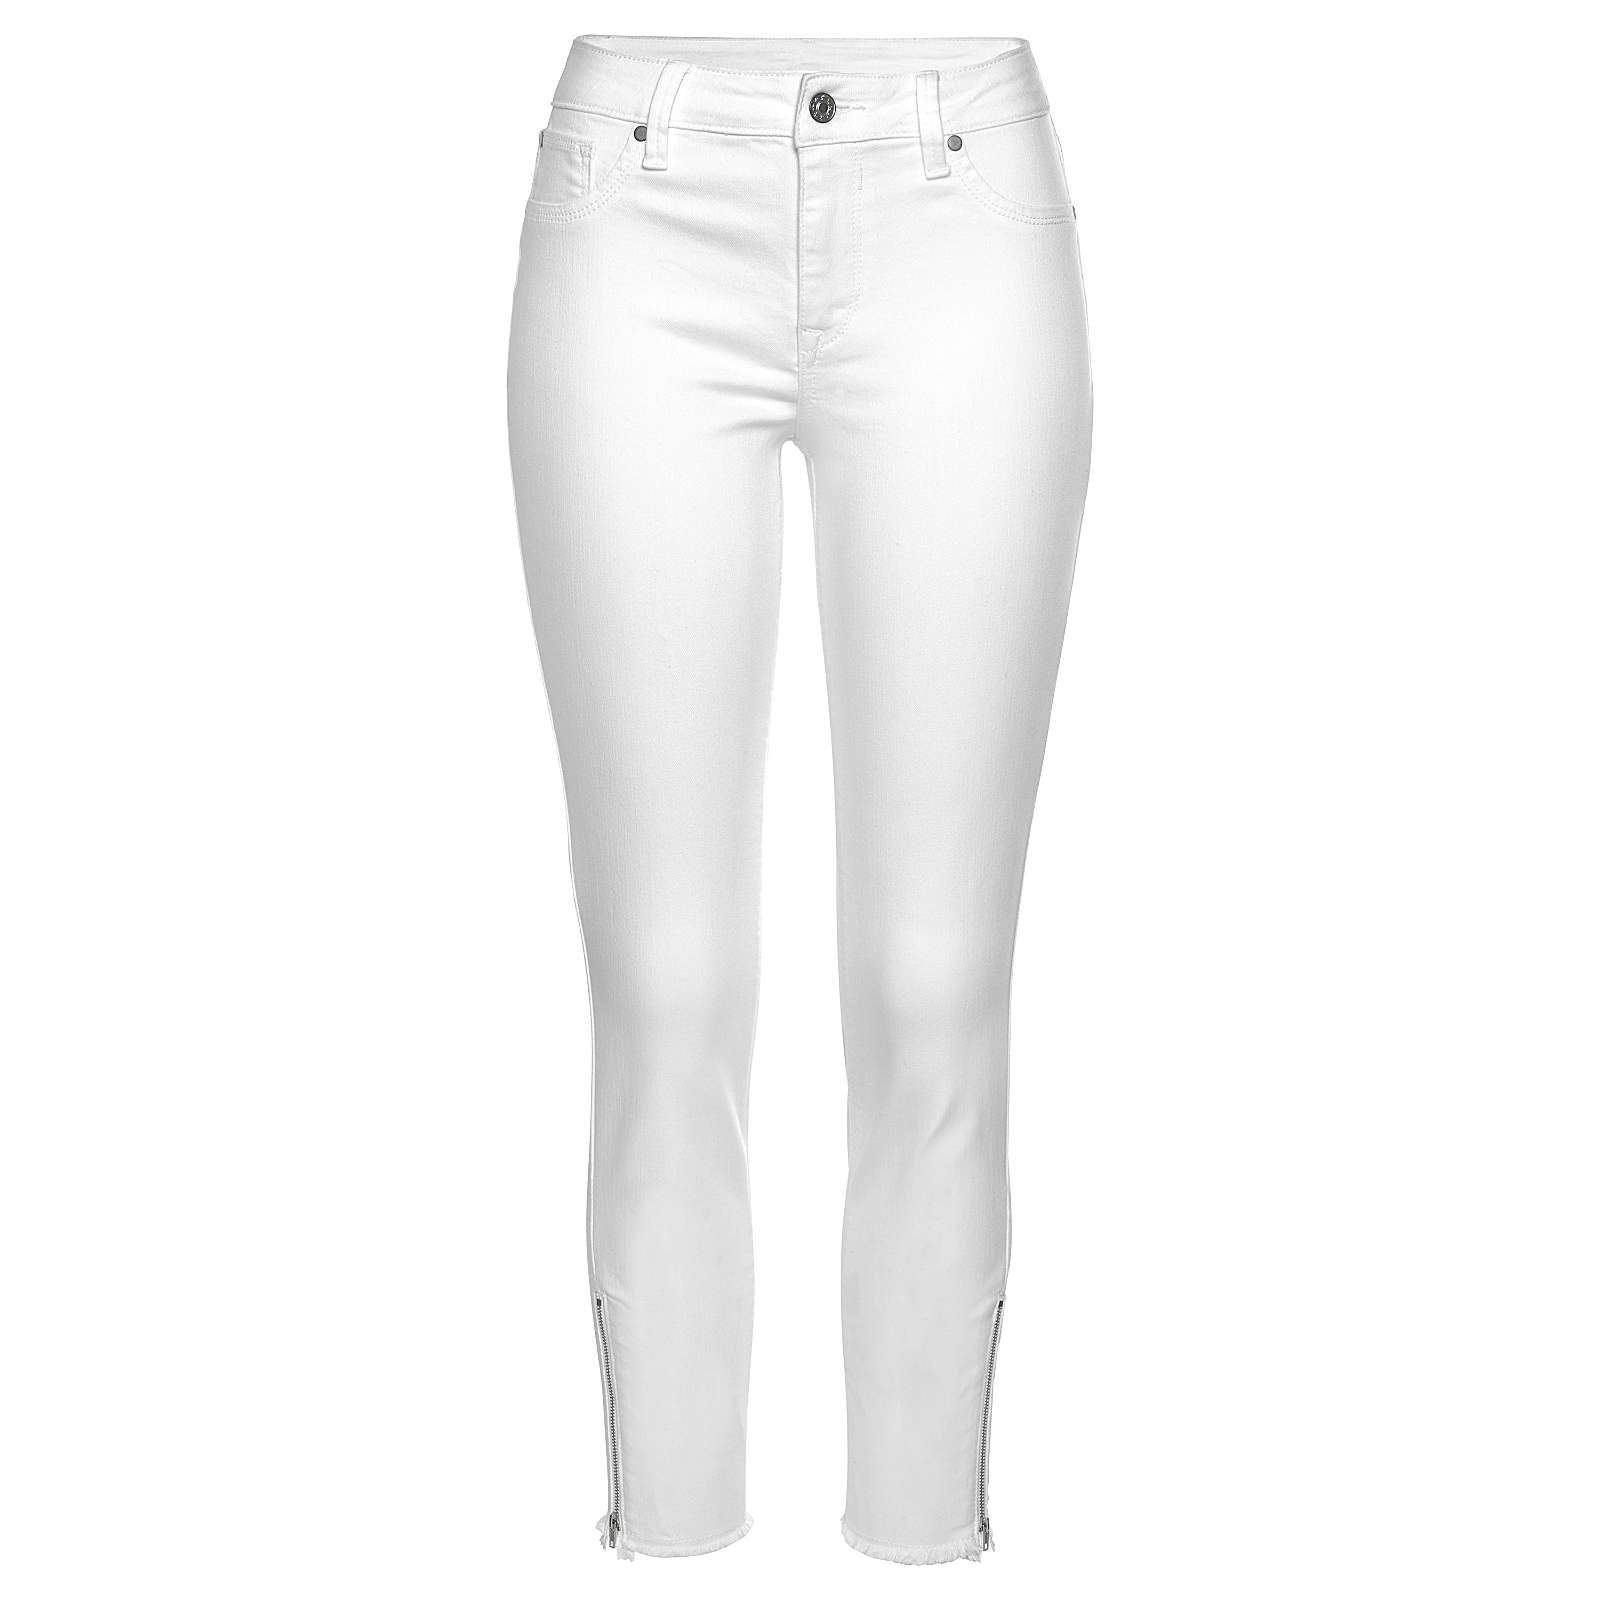 LASCANA Jeggings Jeggings weiß Damen Gr. 46 von Lascana